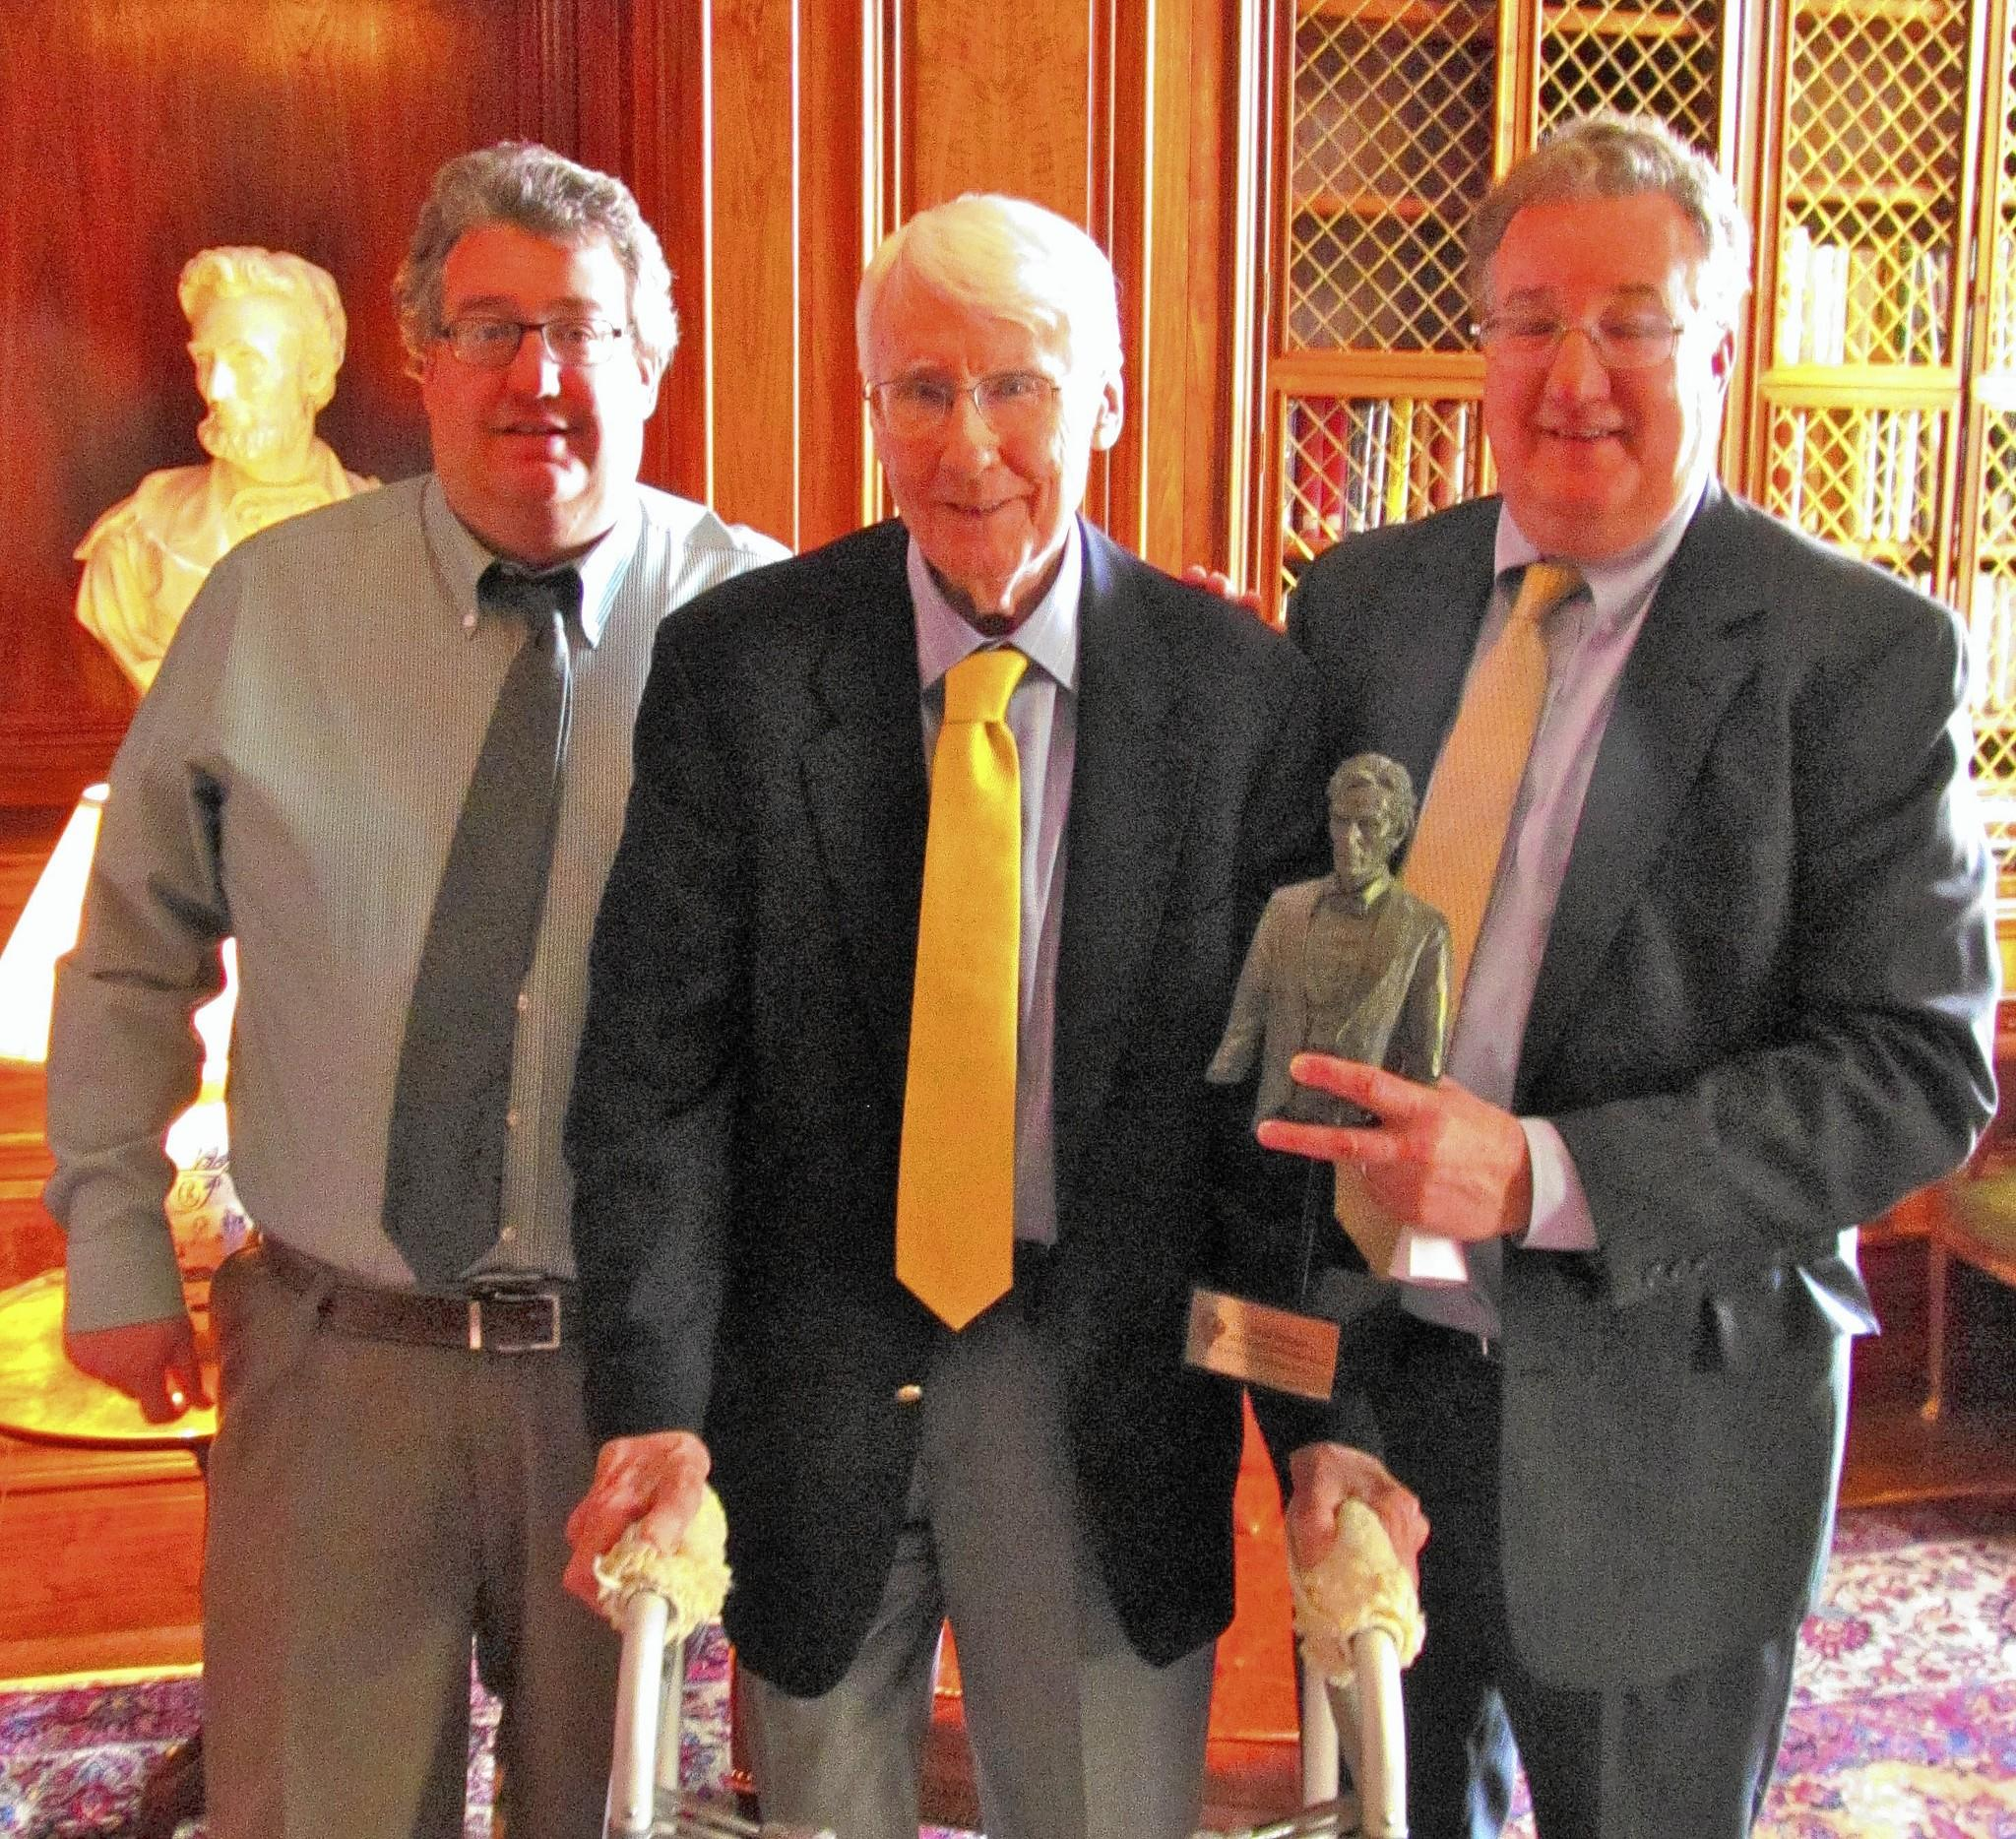 Retired New Trier High School teacher, David Dickman, 84, of Wilmette, was recently given a lifetime achievement award by The Illinois State Historical Society. Dickman (center) is flanked by his sons, Steve Dickman (left) and Larry Dickman (right) who were in Springfield for the April 26 award ceremony.